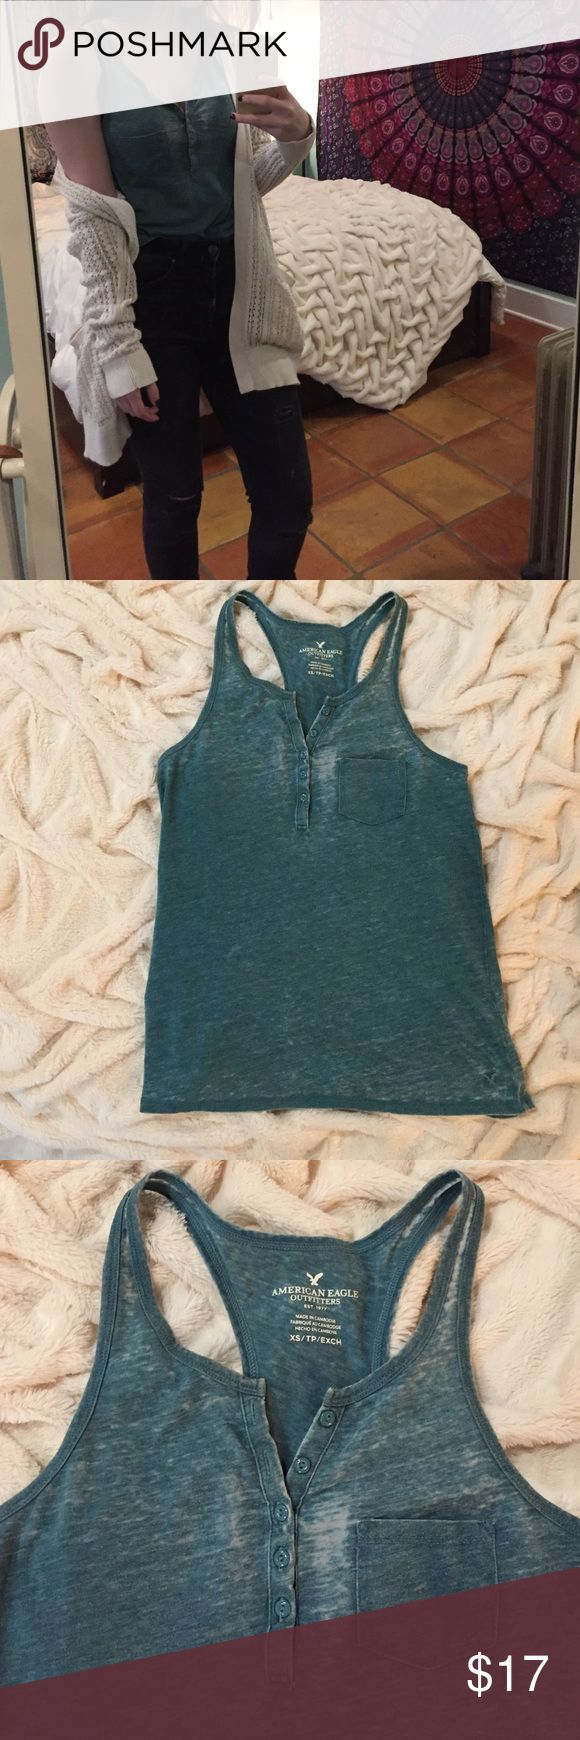 American Eagle XS Green Tank Top American eagle green tank top. Size XS. Fits loose. In great condition! Very soft. American Eagle Outfitters Tops Tank Tops